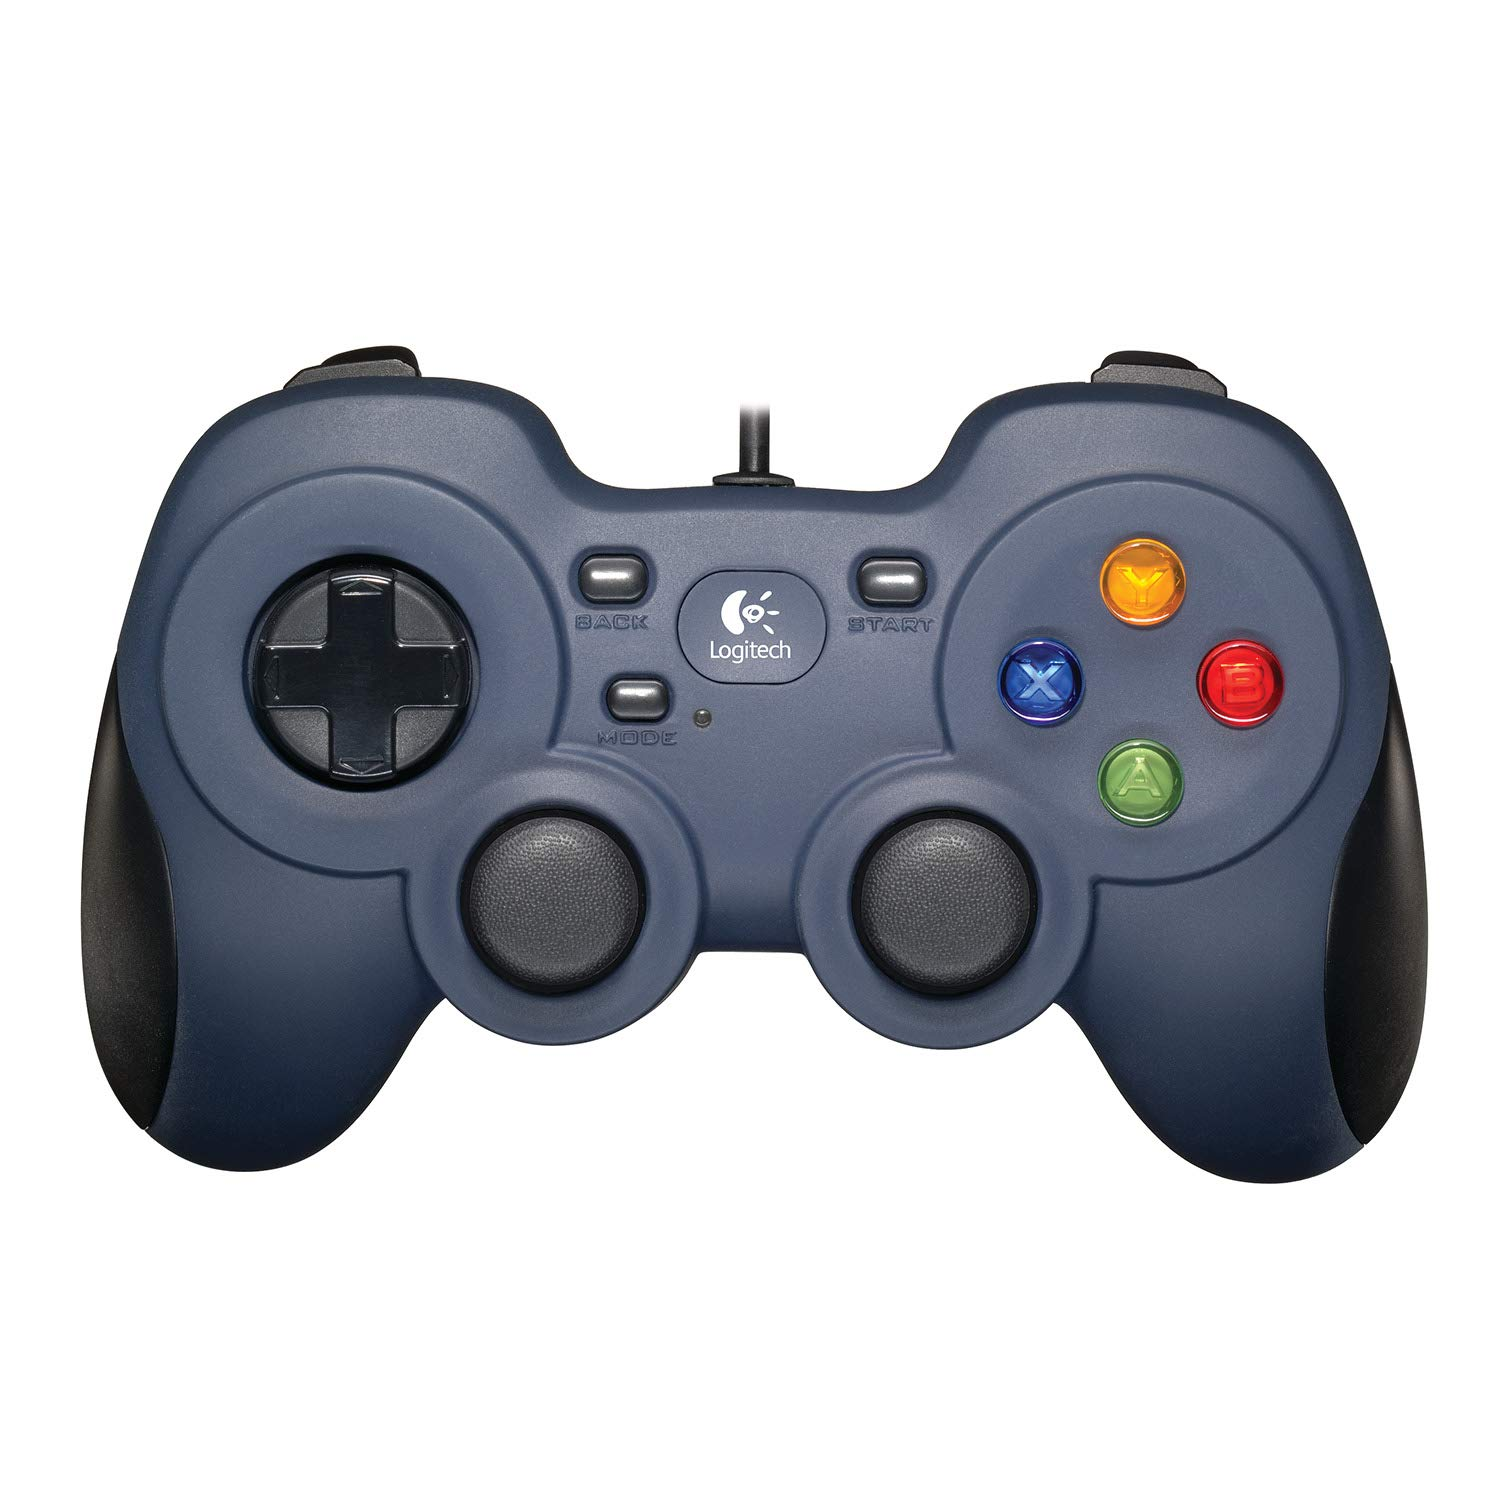 Logitech Gamepad F310 - Blue